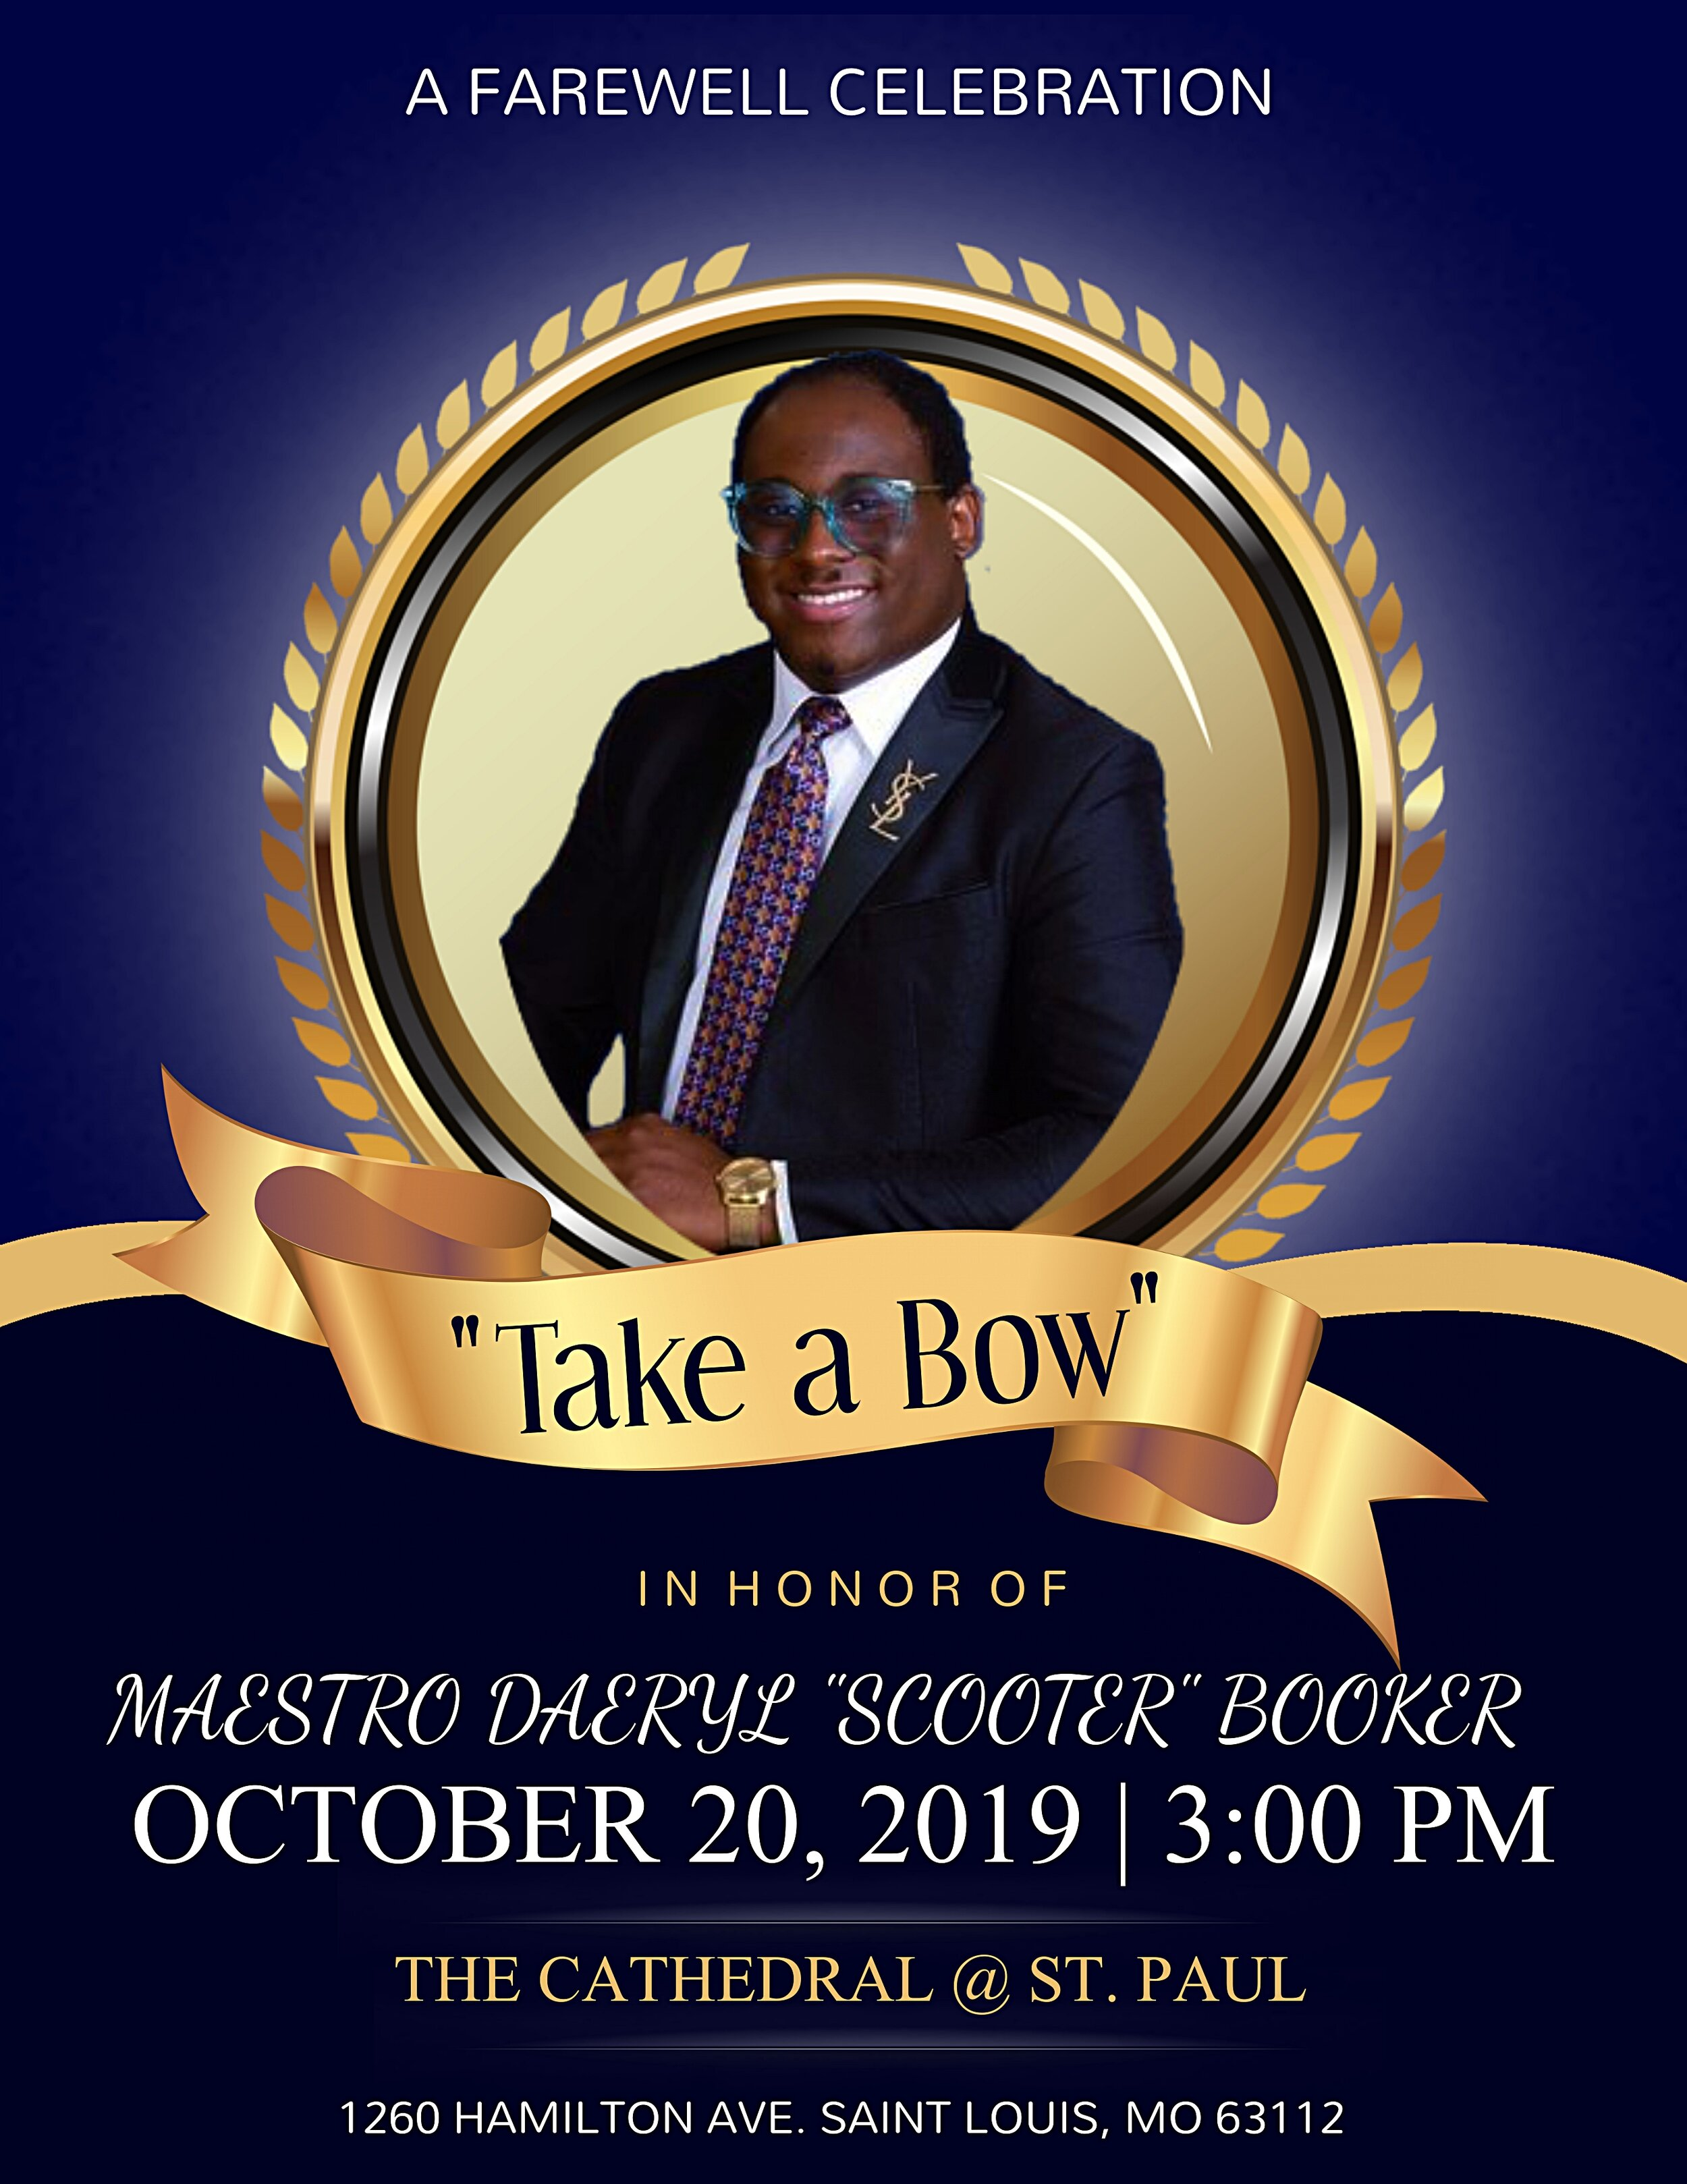 Celebrate And Bid Farewell To Maestro Daeryl Scooter Booker The Cathedral St Paul Ame Church